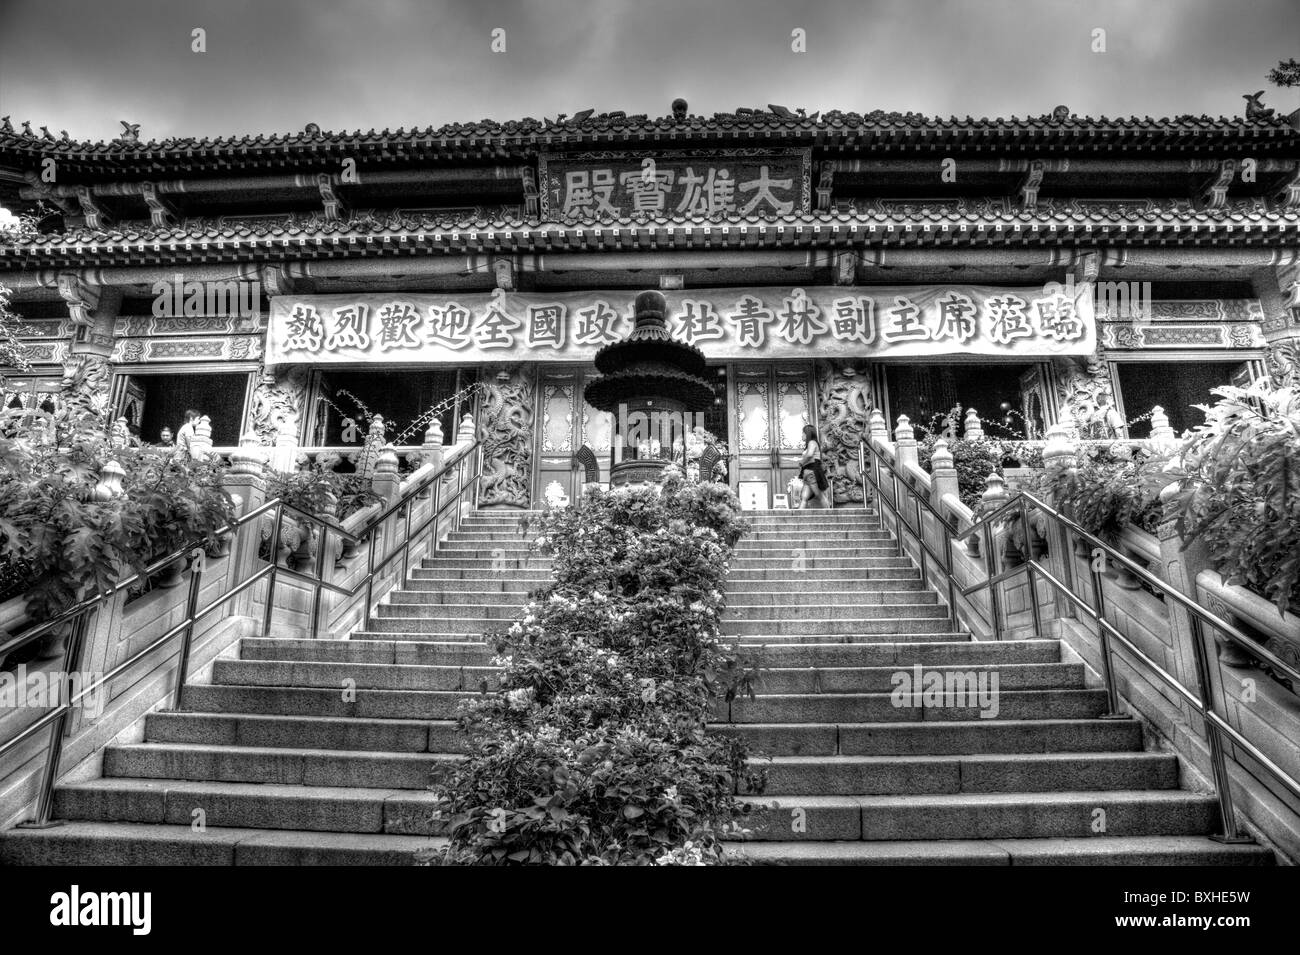 The Po Lin Monastery is located in Ngong Ping on Lantau Island in Hong Kong. - Stock Image